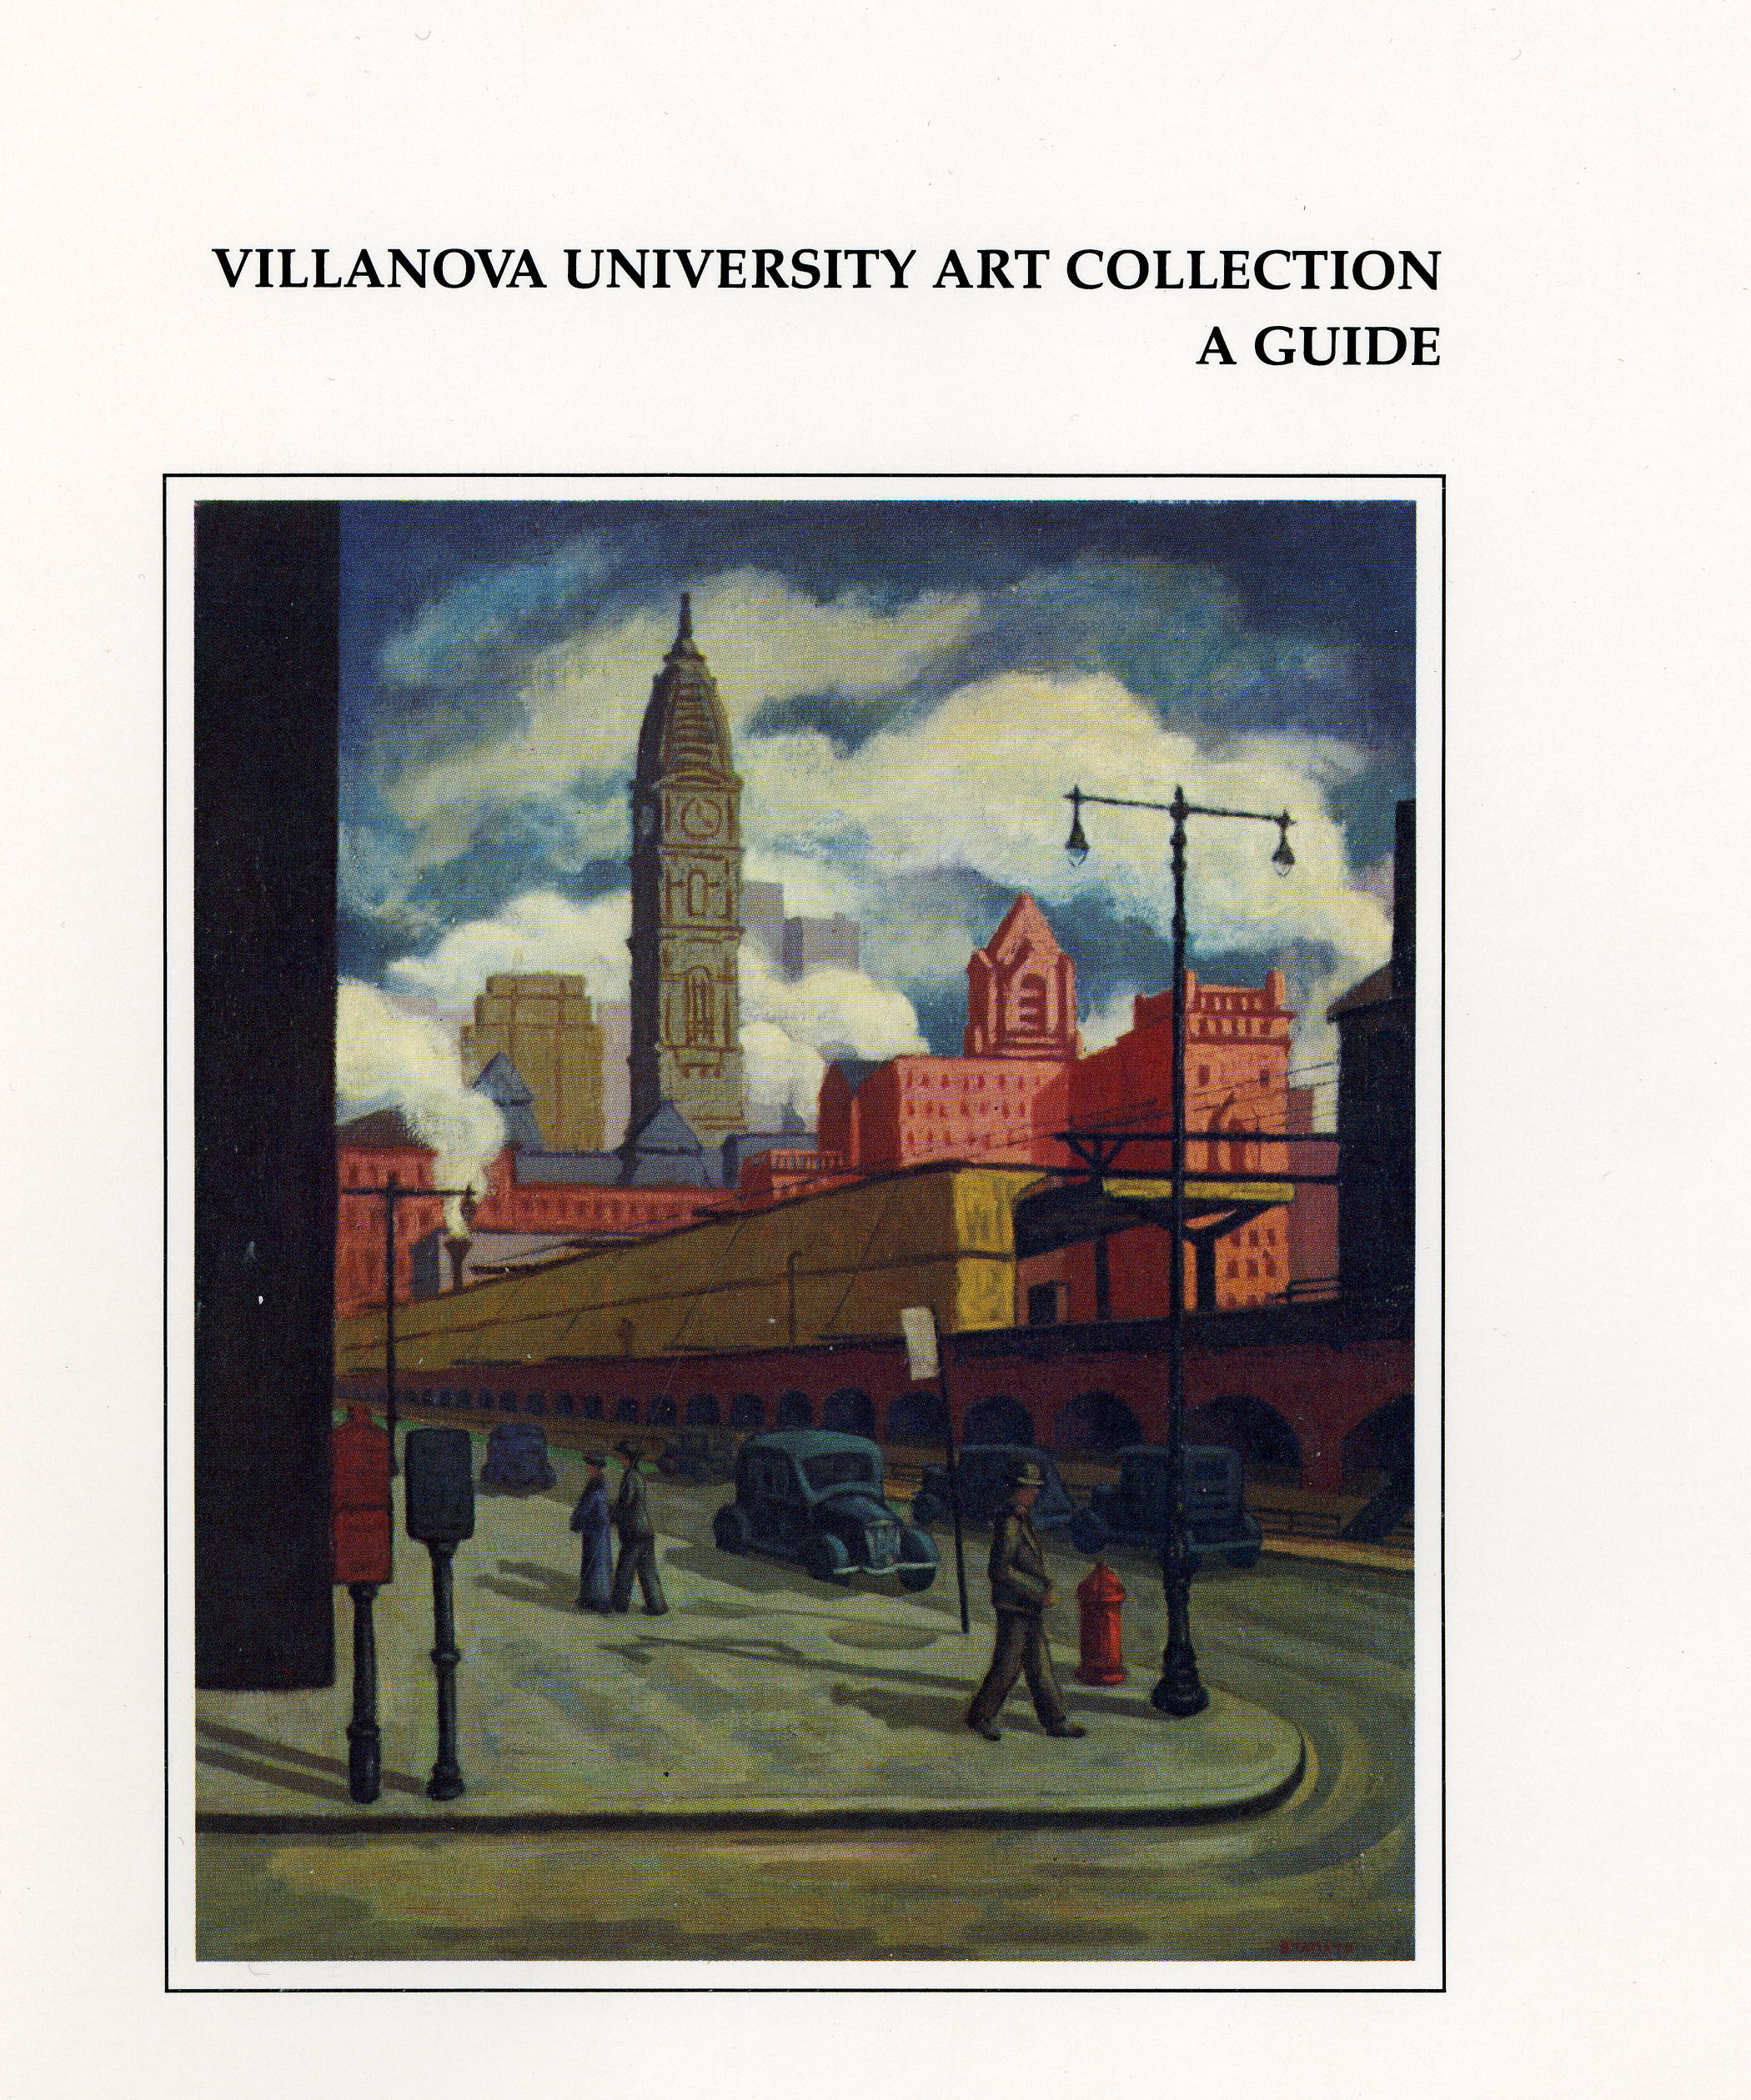 Villanova University Art Collection, A Guide